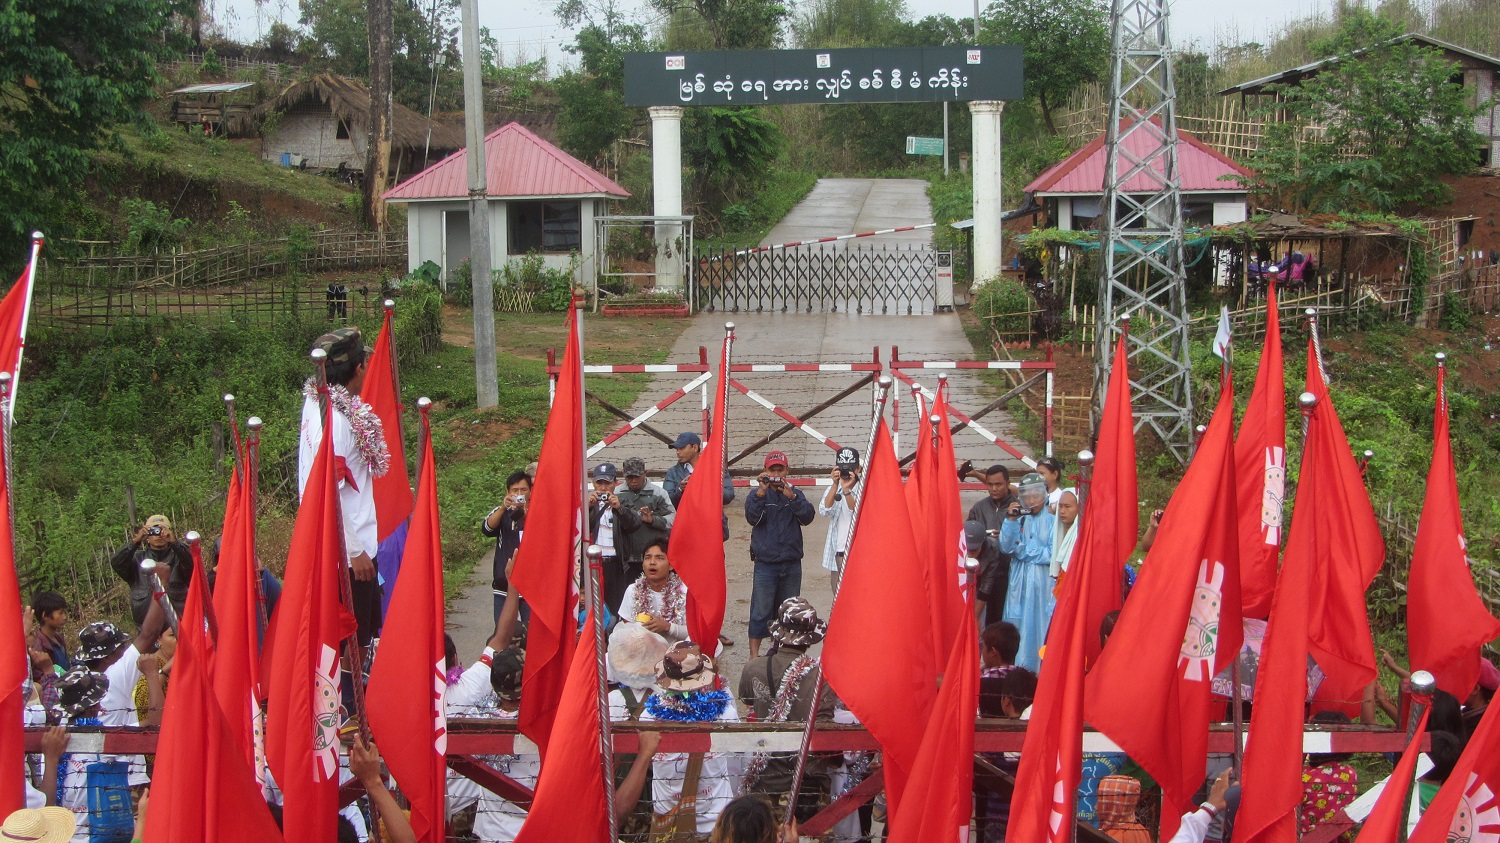 Locals staging a demonstration against the dam in 2015.(Photos: Nan Lwin Hnin Pwint / The Irrawaddy)